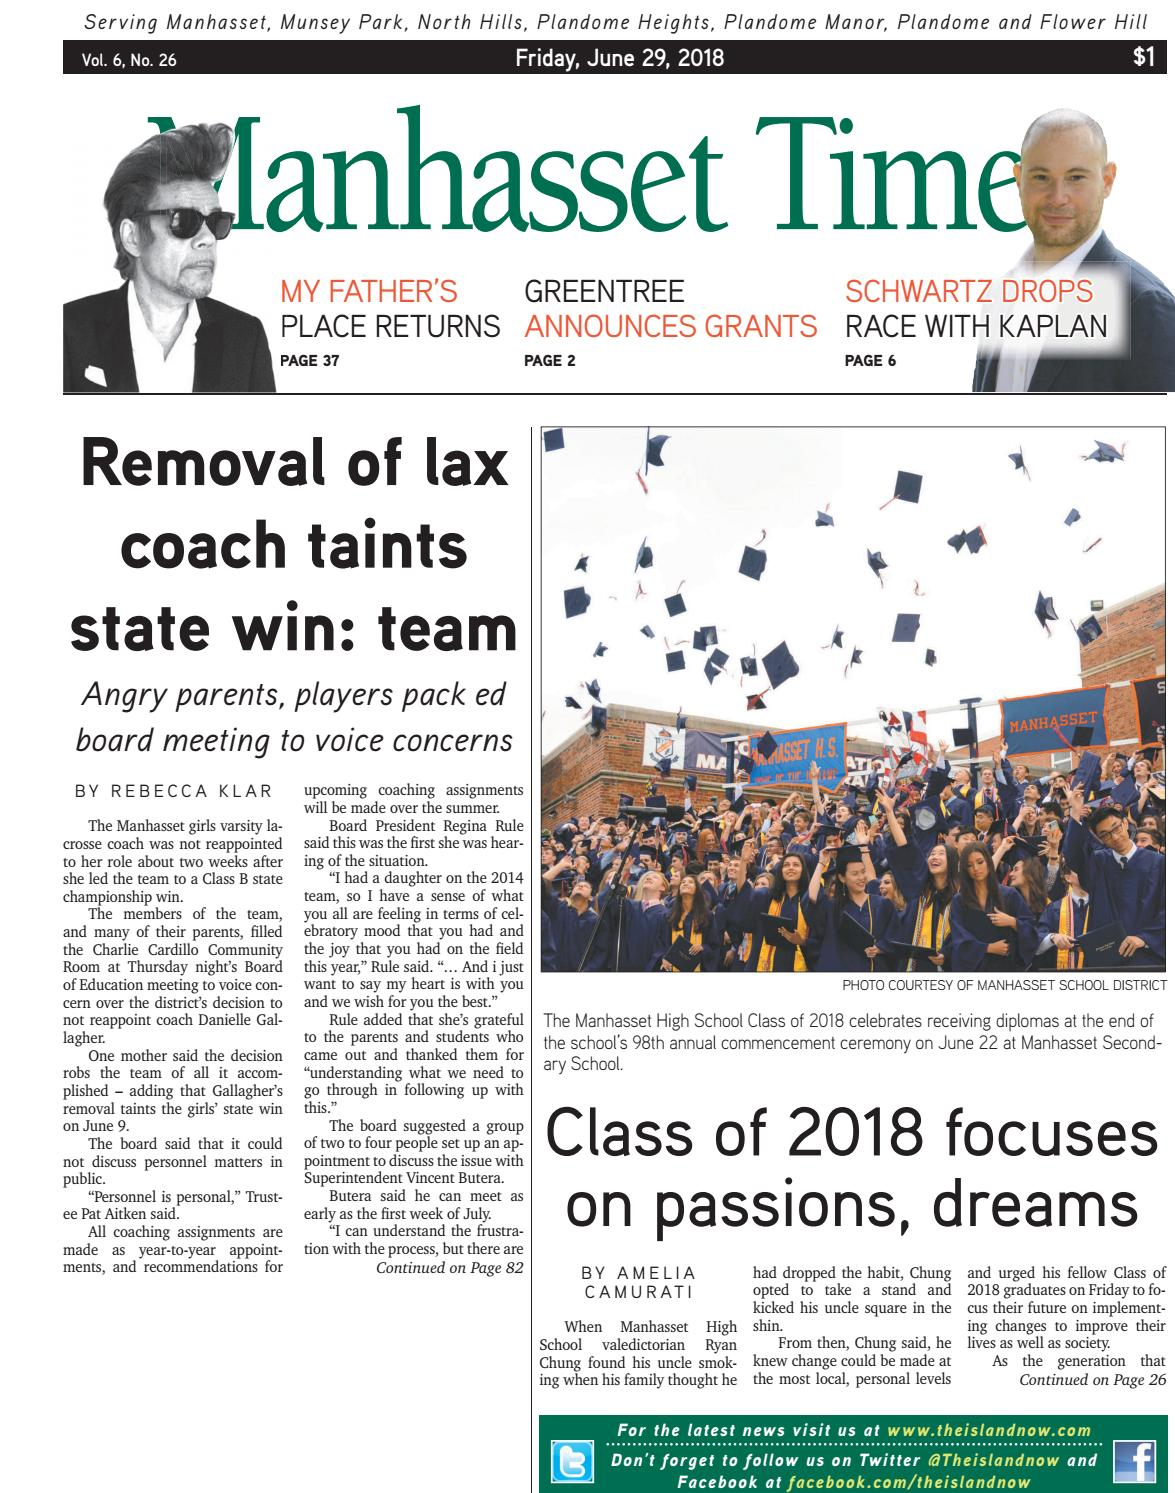 Manhasset Times 2018 06 29 by The Island Now - issuu ee64896af